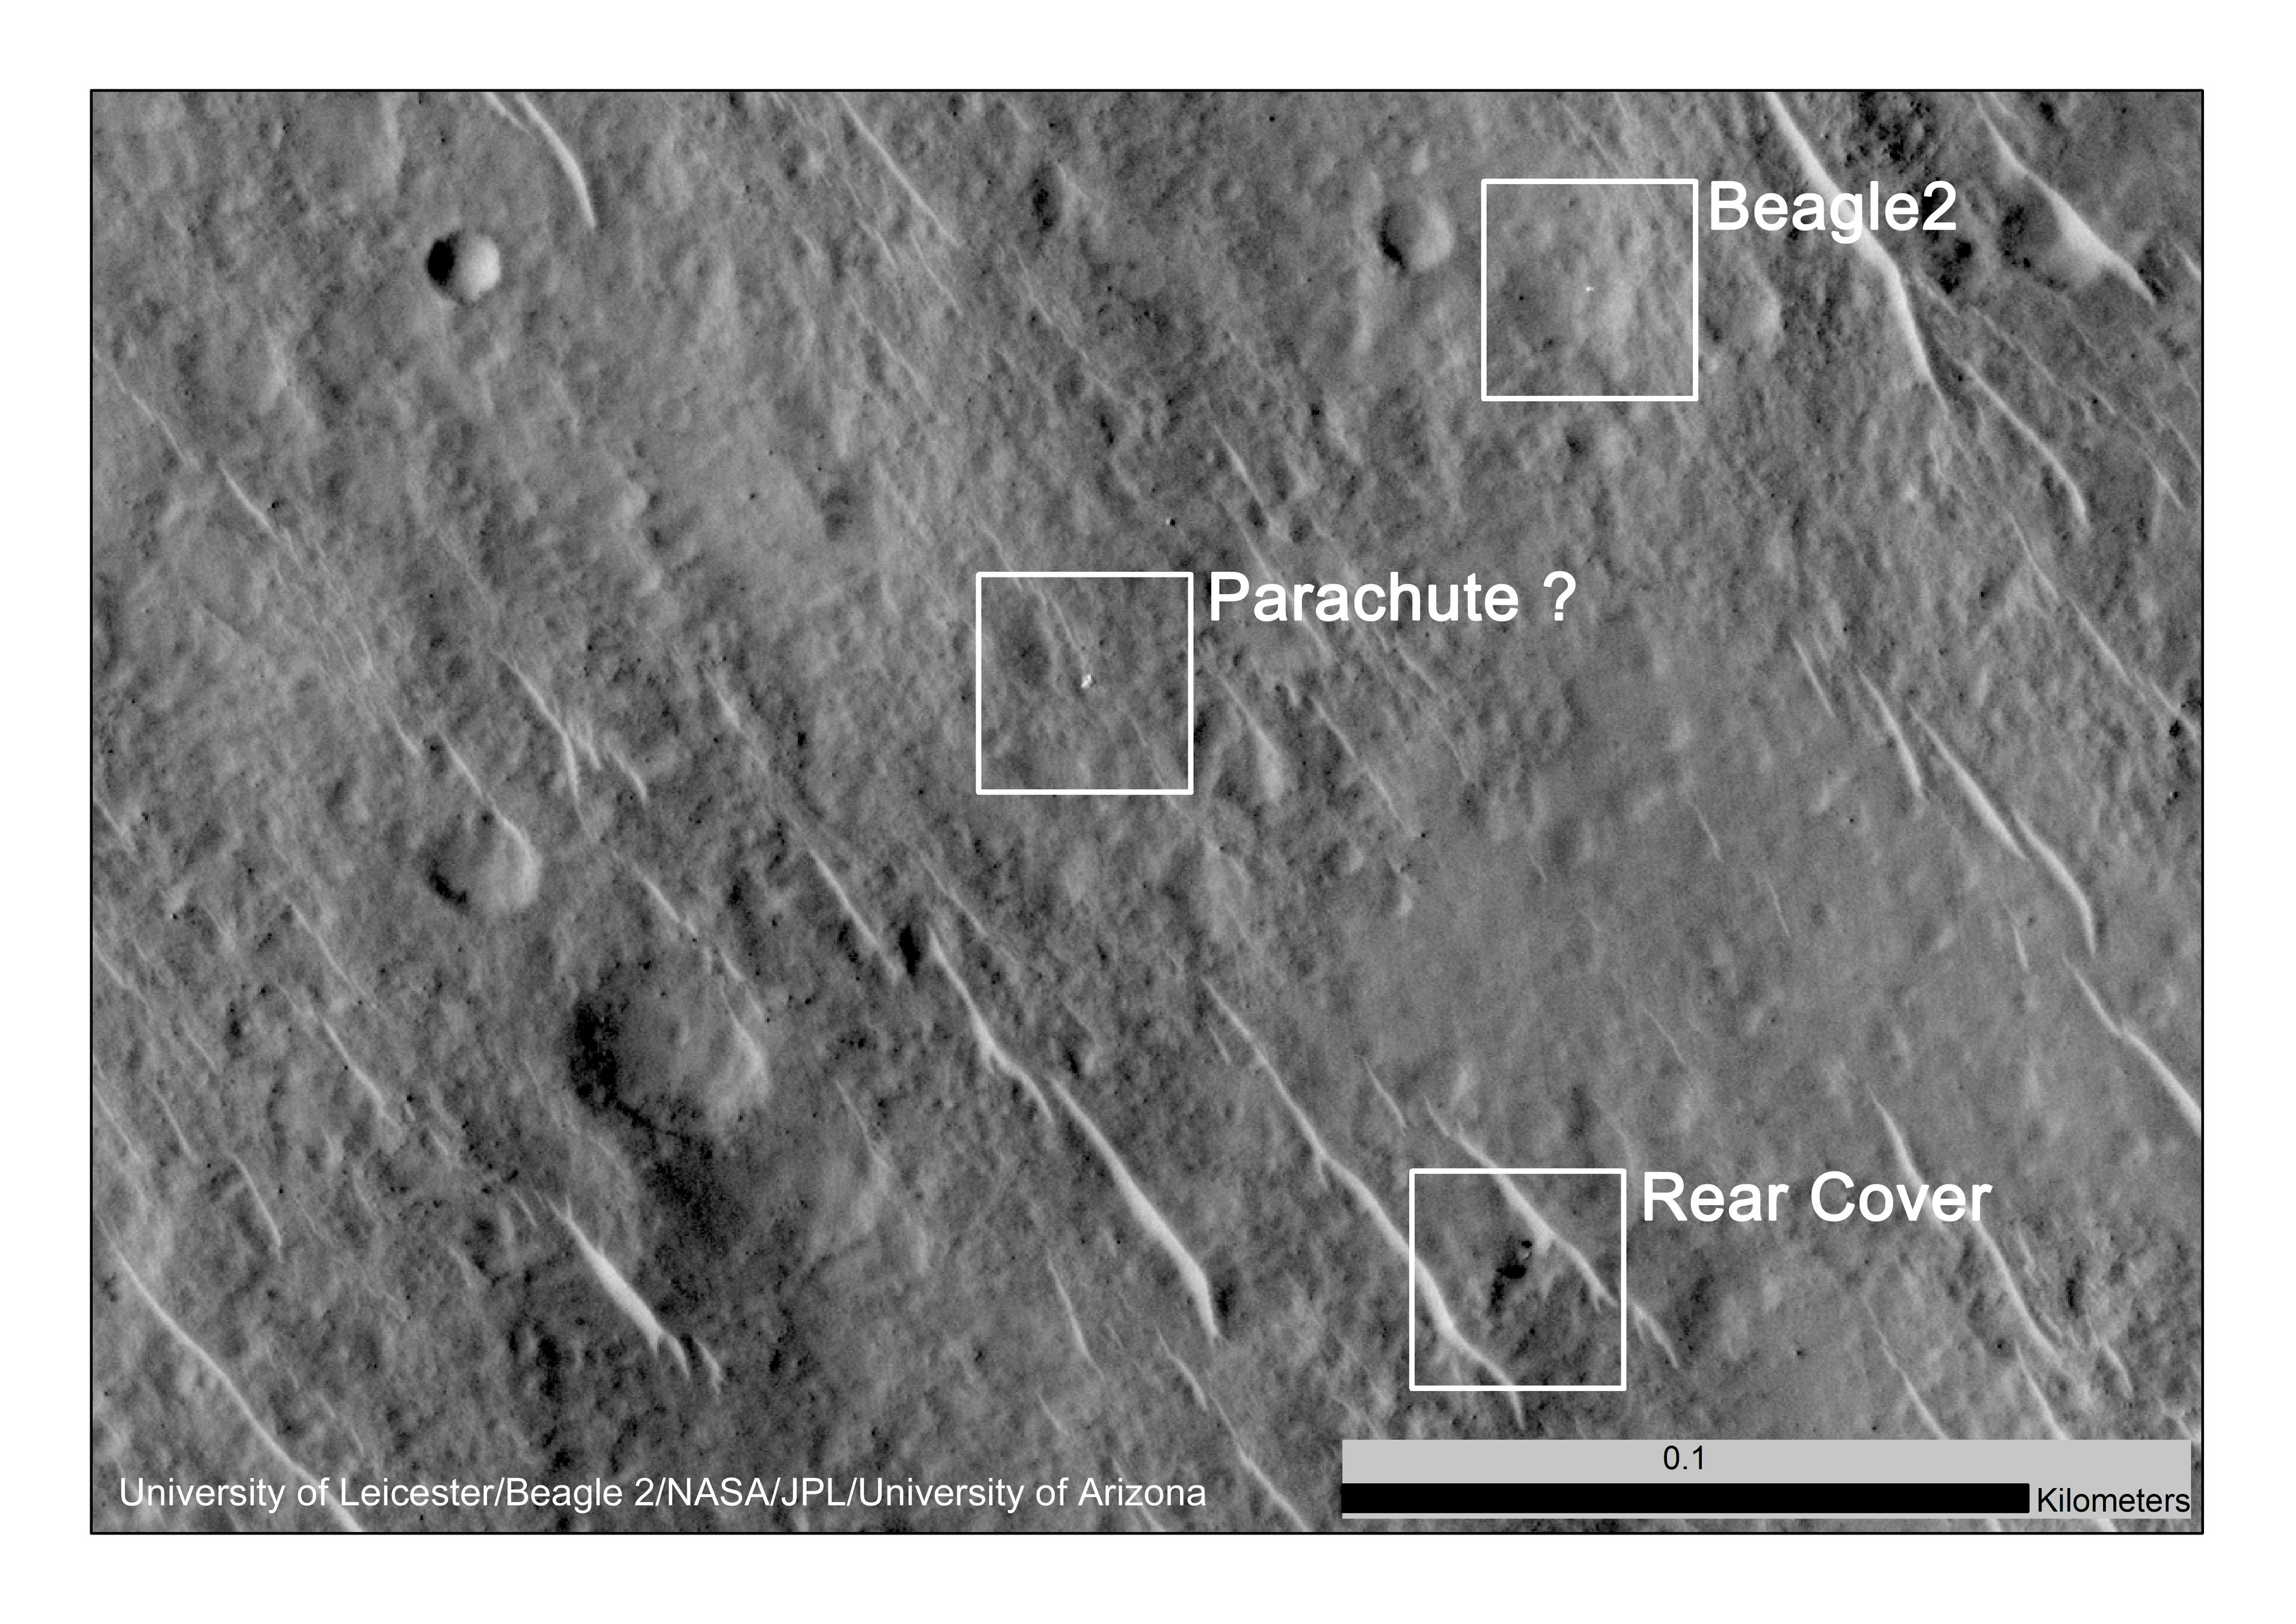 This annotated image shows where features seen in an observation by NASA's Mars Reconnaissance Orbiter have been interpreted as hardware from the Dec. 25, 2003, arrival at Mars of the United Kingdom's Beagle 2 Lander.